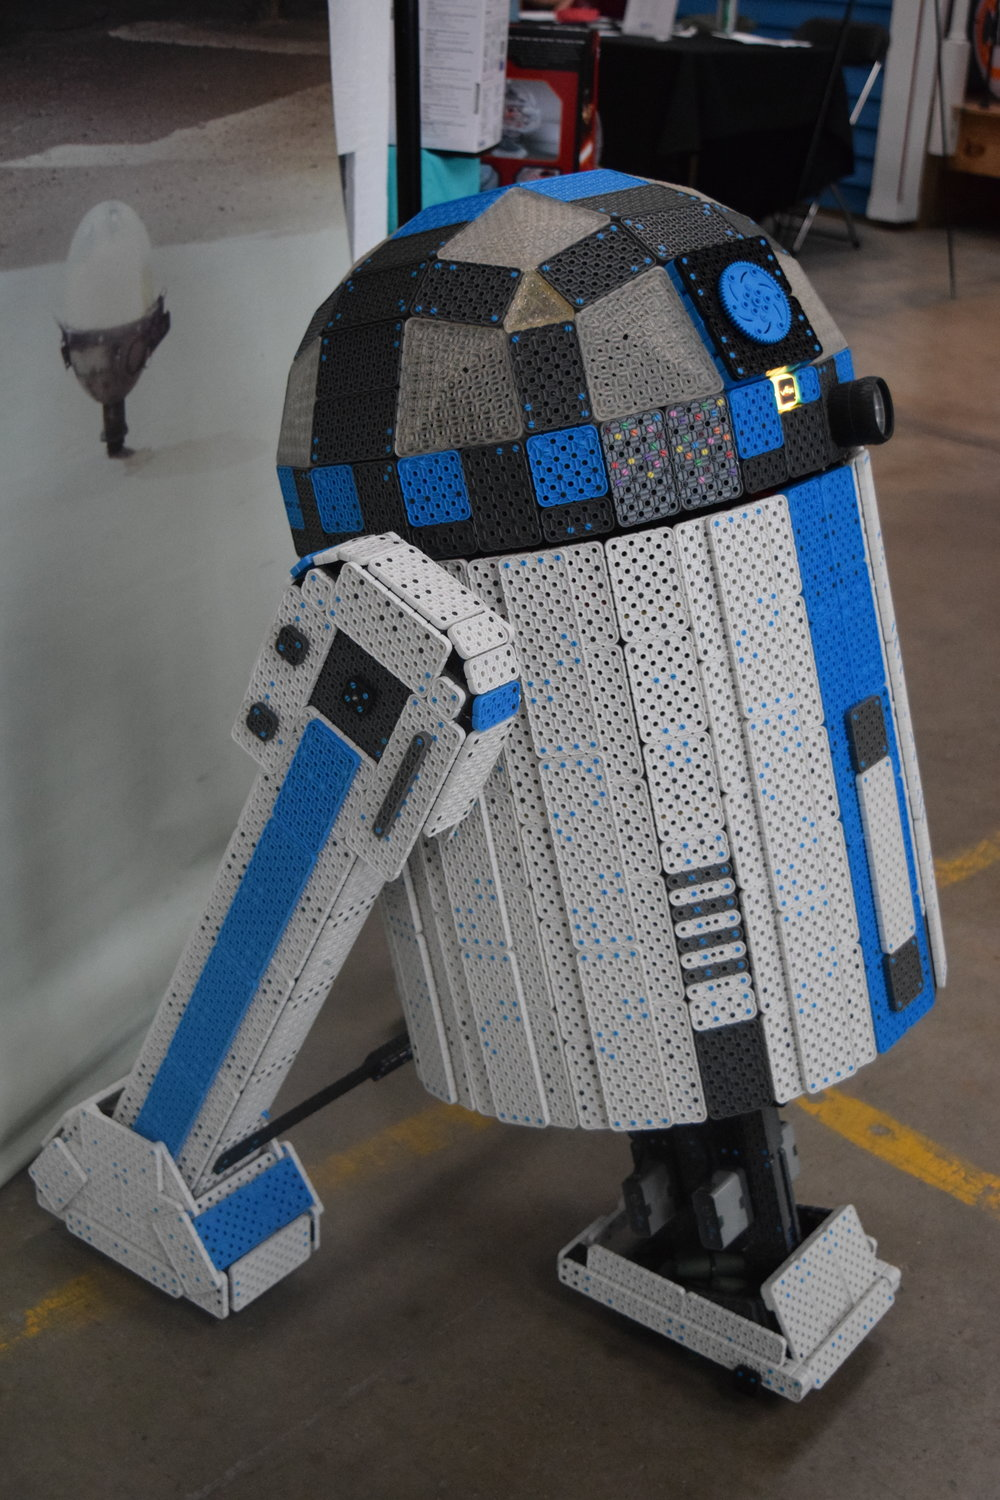 A life-sized R2D2 built of LEGOs drove around the event greeting guests